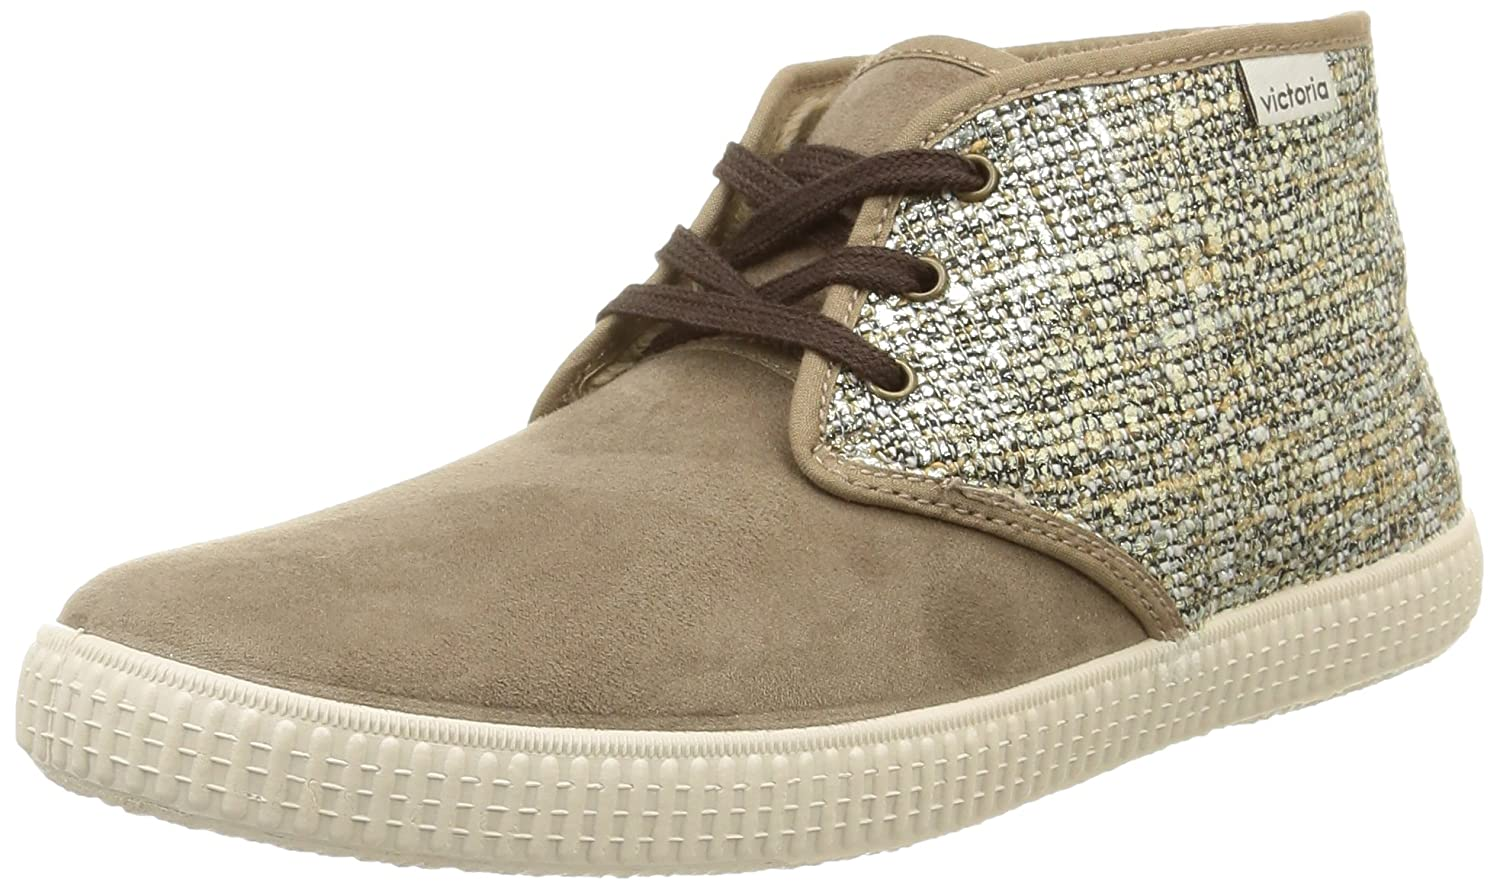 Victoria 116729, Desert 19703 Boots B01LZLWUHD Mixte Adulte Adulte Beige (Taupe) 28e6375 - fast-weightloss-diet.space